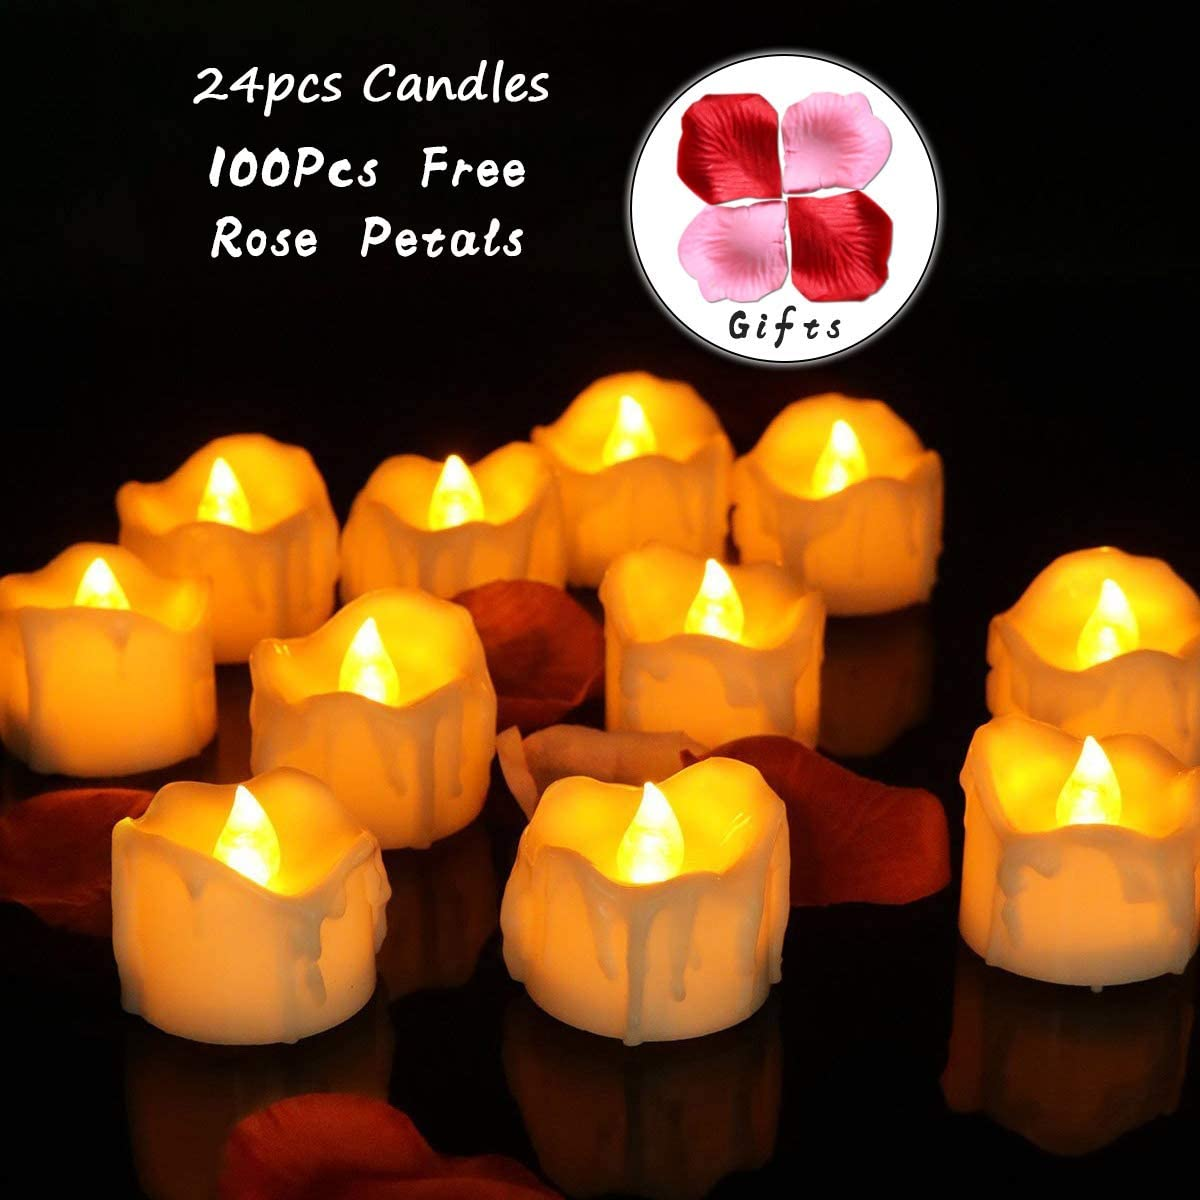 Youngerbaby 24pcs Amber Yellow Flickering Timing Tea Light Candles with Timer 6 Hrs on 18 Hrs Off Flameless LED Tealights Wax Dripped Battery Operated Candles for Wedding Birthday Party Dinner